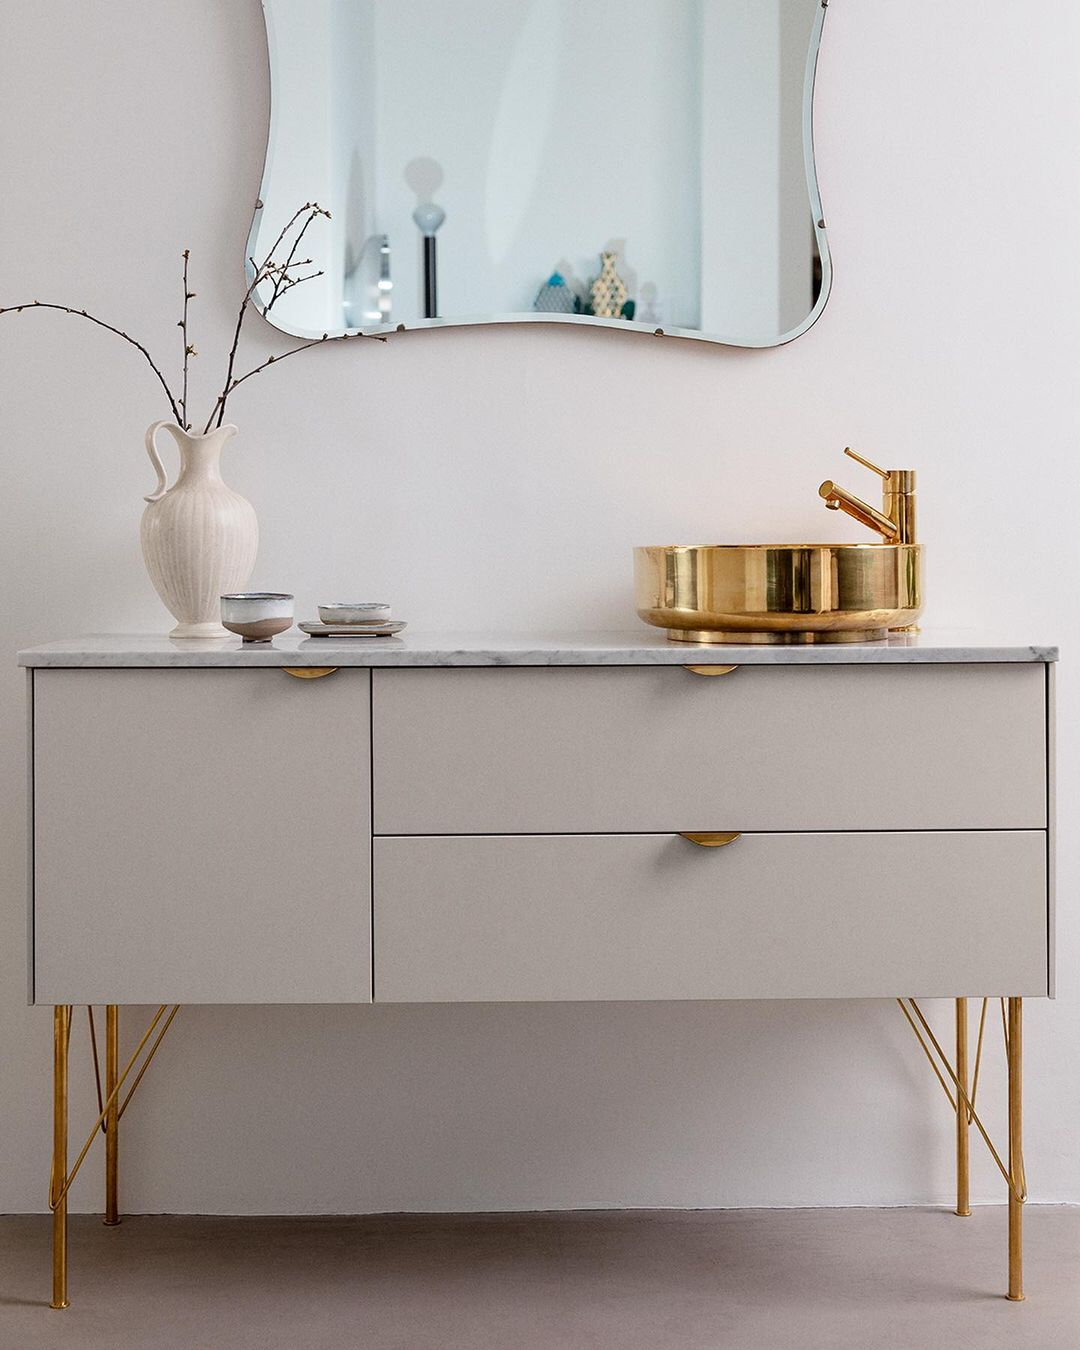 Legs for your IKEA furniture -Superfront- sink